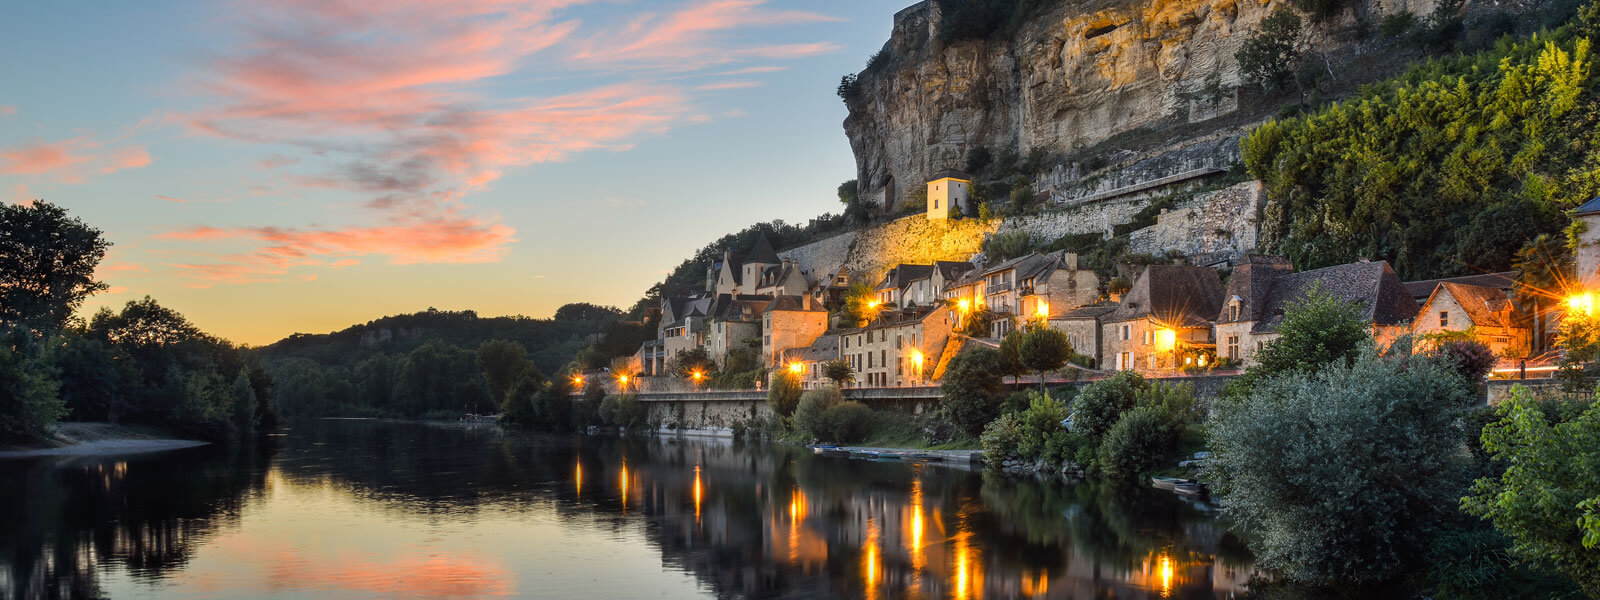 The Dordogne valley